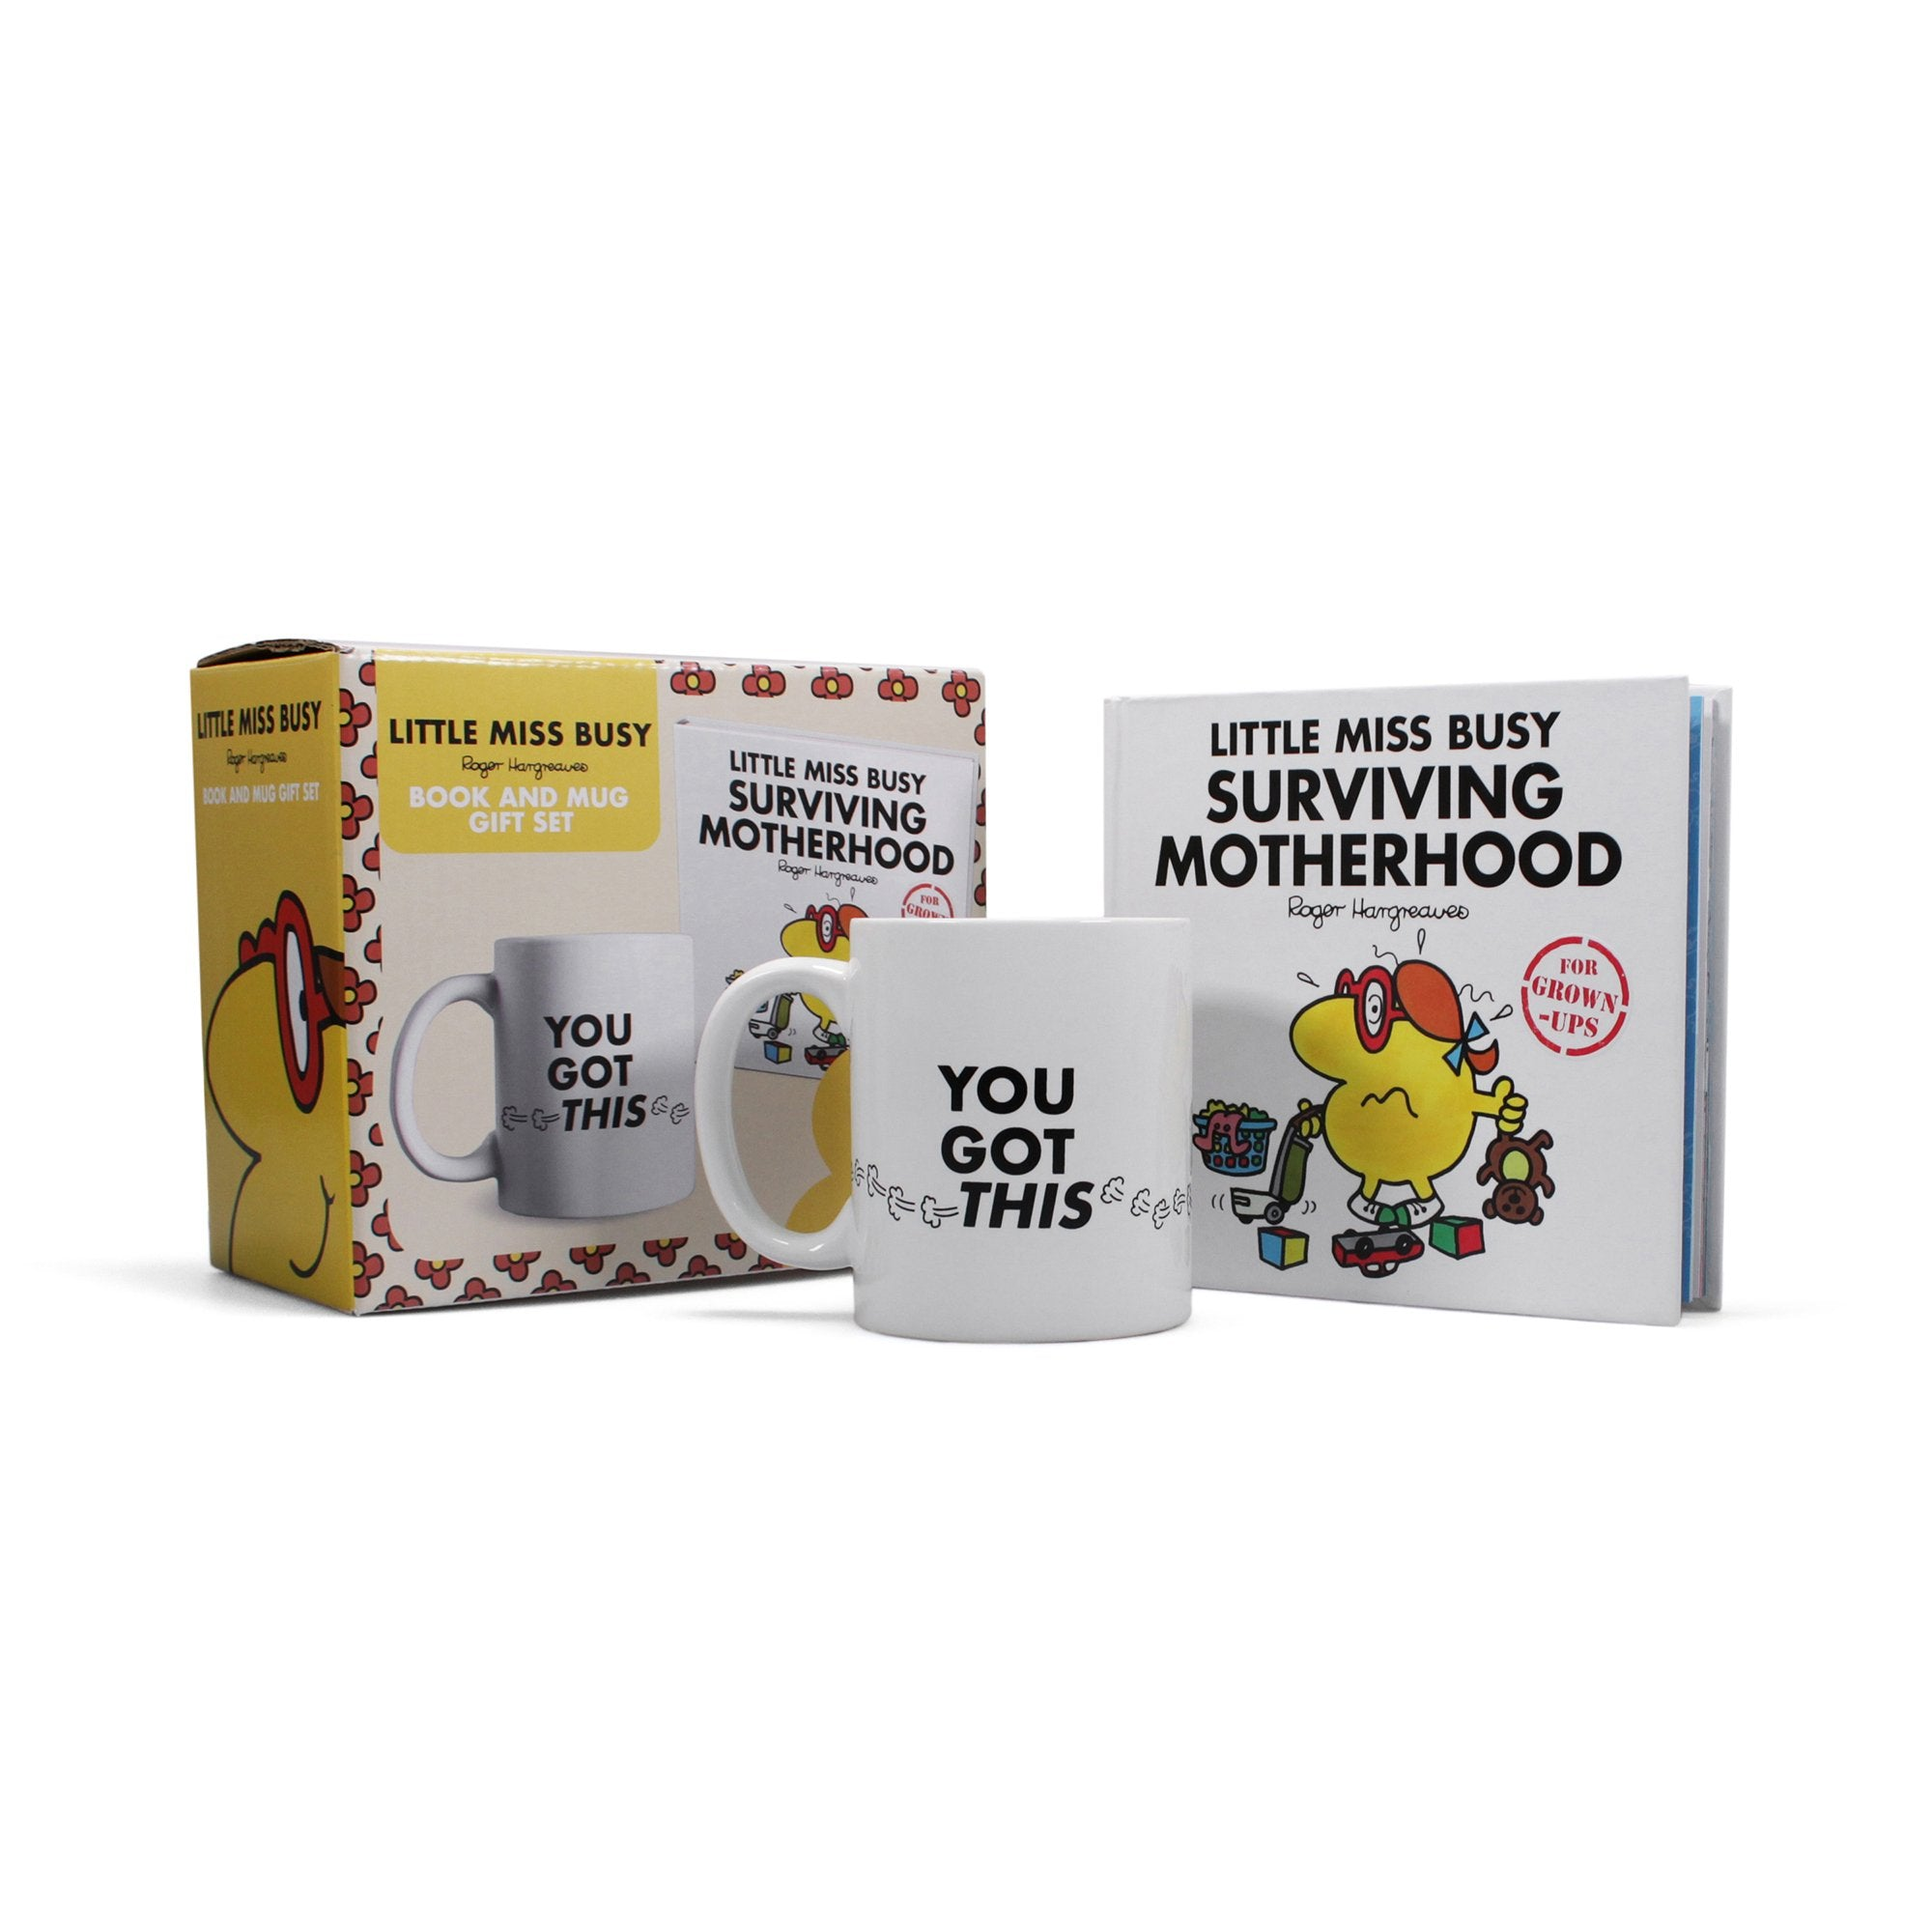 Mr. Men Little Miss Busy Surviving Motherhood Book & Mug Set - Half Moon Bay US